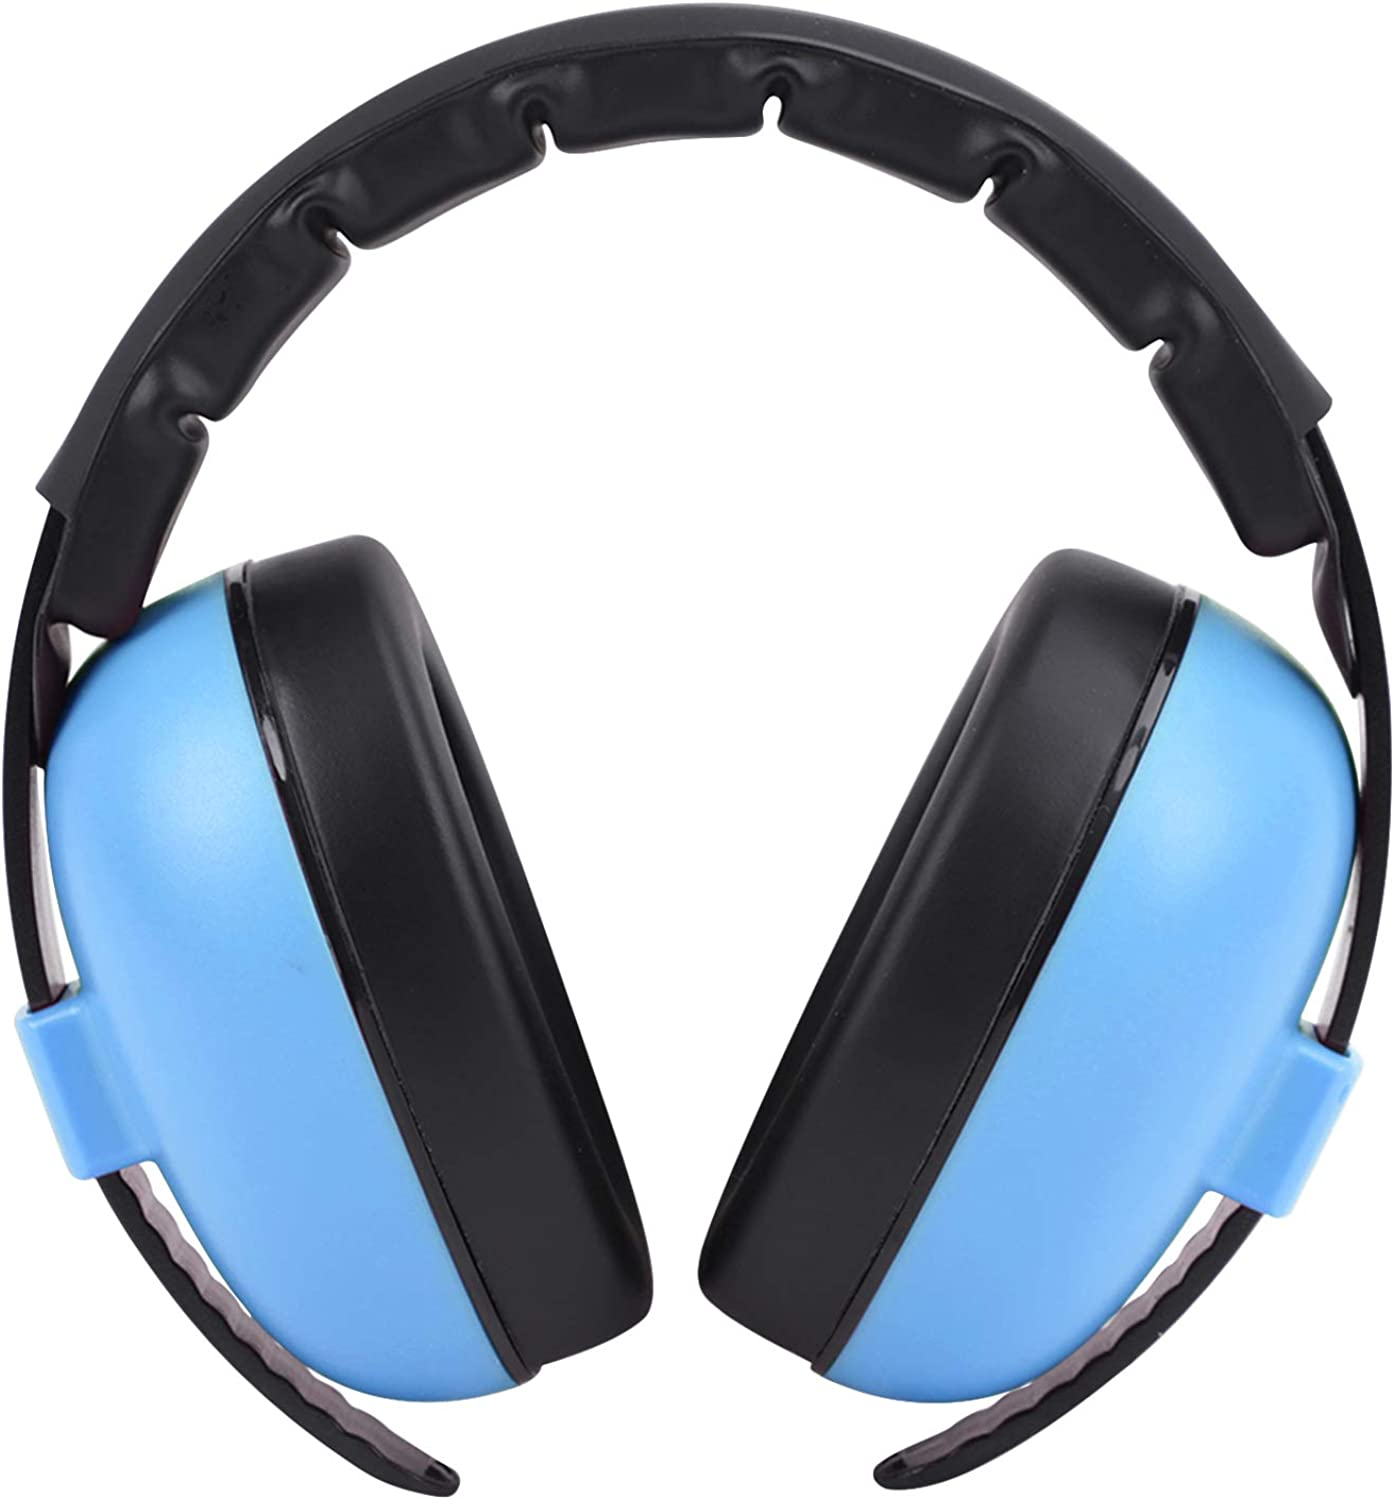 Baby Protective Earmuff Noise Canceling Ear Muffs Noise Reduction Headphone for Airplane